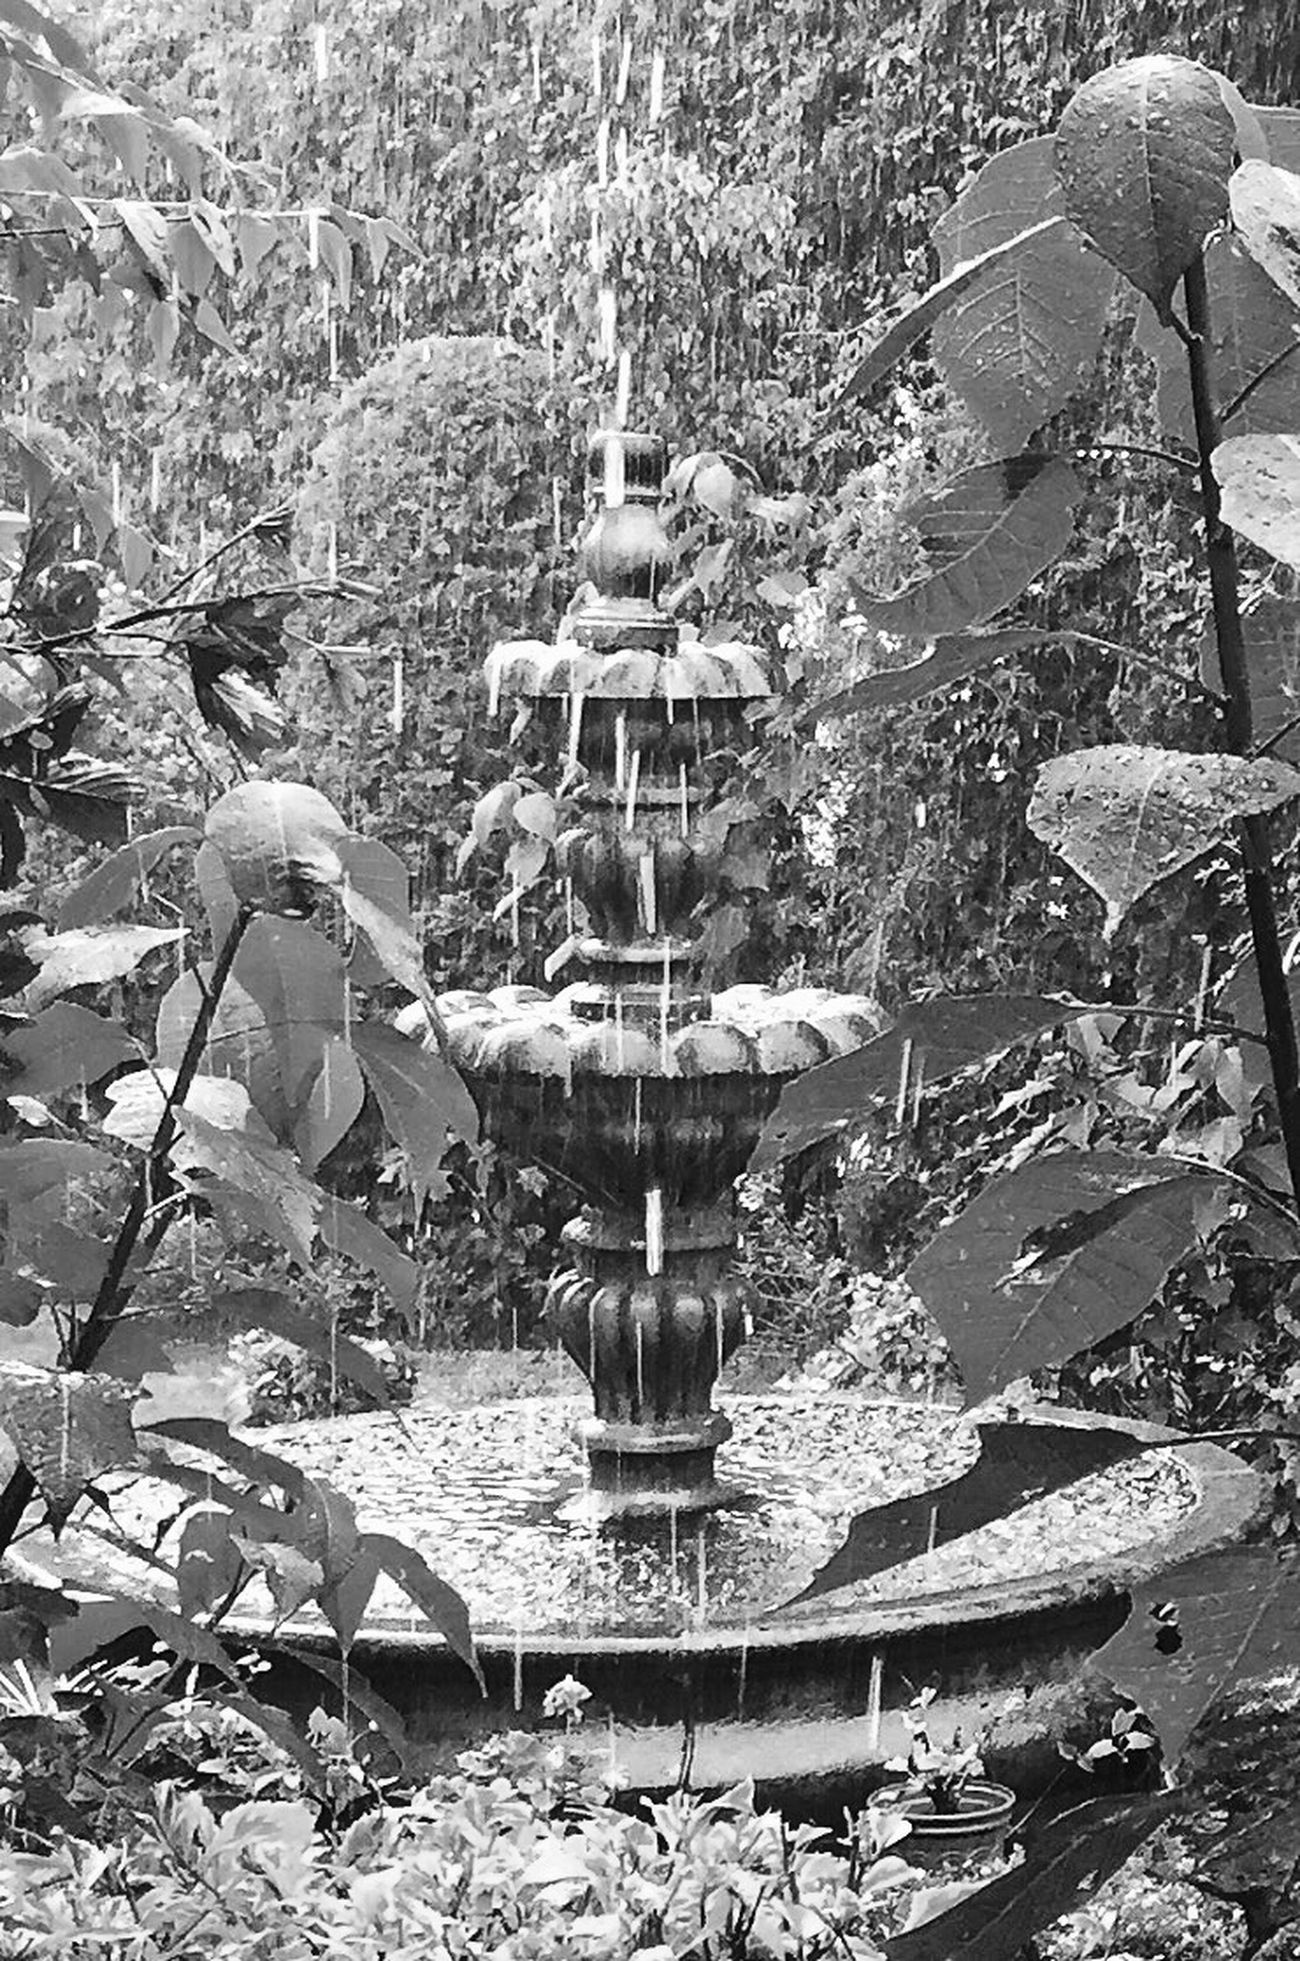 Raindrops Rain In My Garden Fountain Melancholic Landscapes Rainy Days Secret Garden Blackandwhite EyeEm Best Shots - Black + White UnspokenGrief My Best Photo 2015